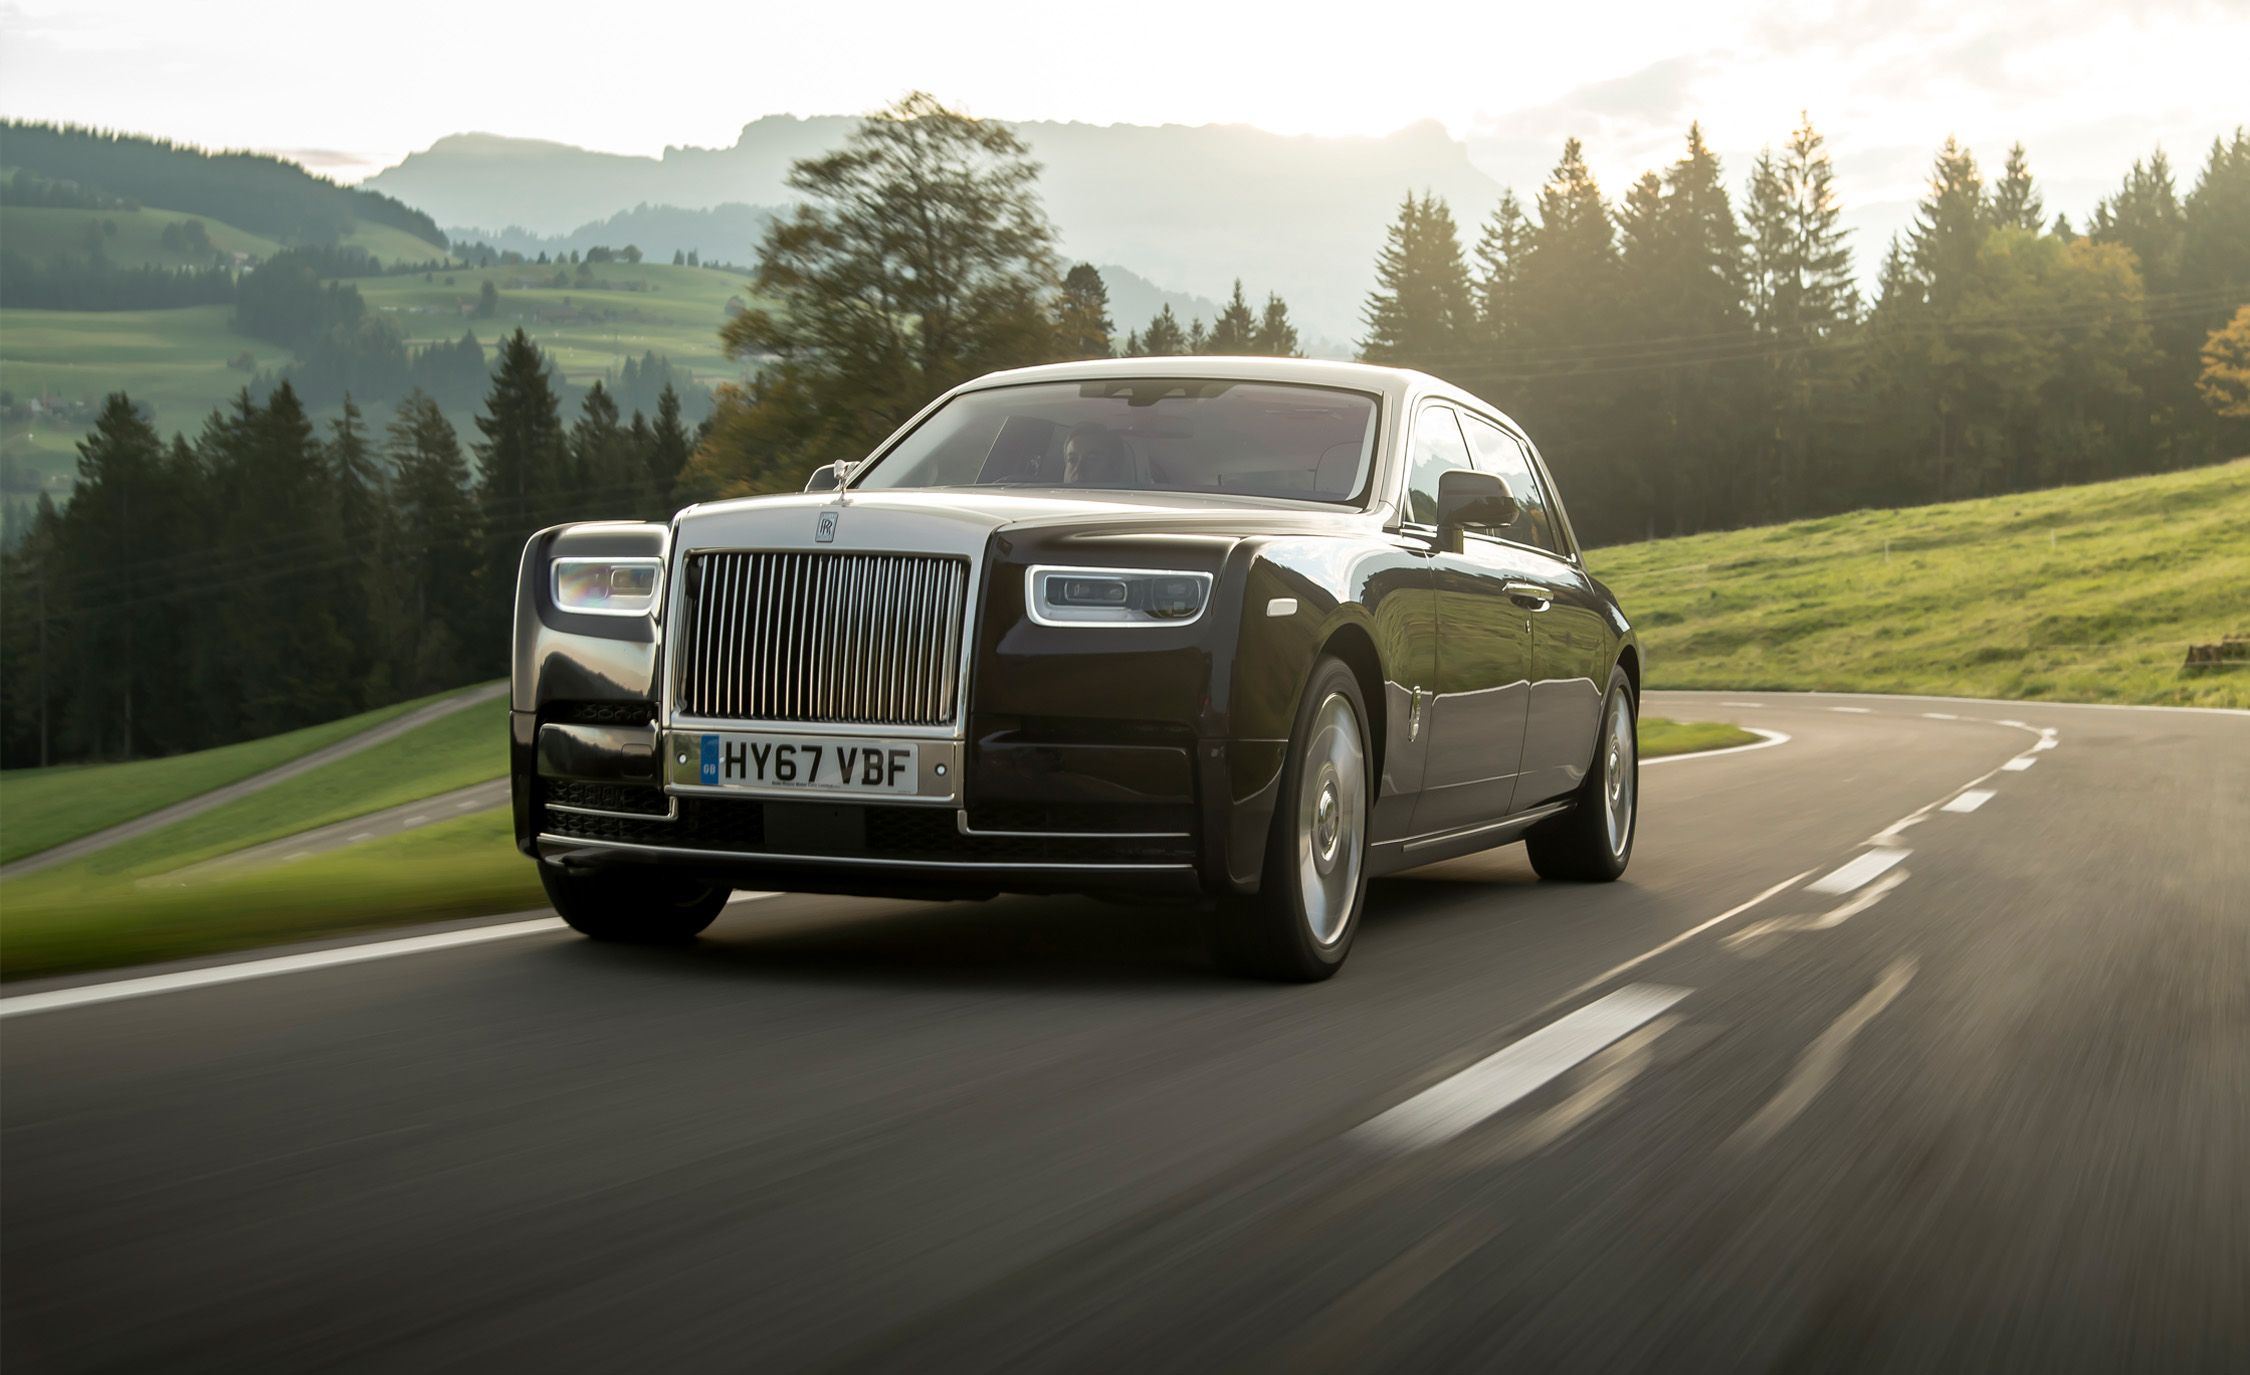 2018 Rolls-Royce Phantom VIII First Drive | Review | Car and Driver